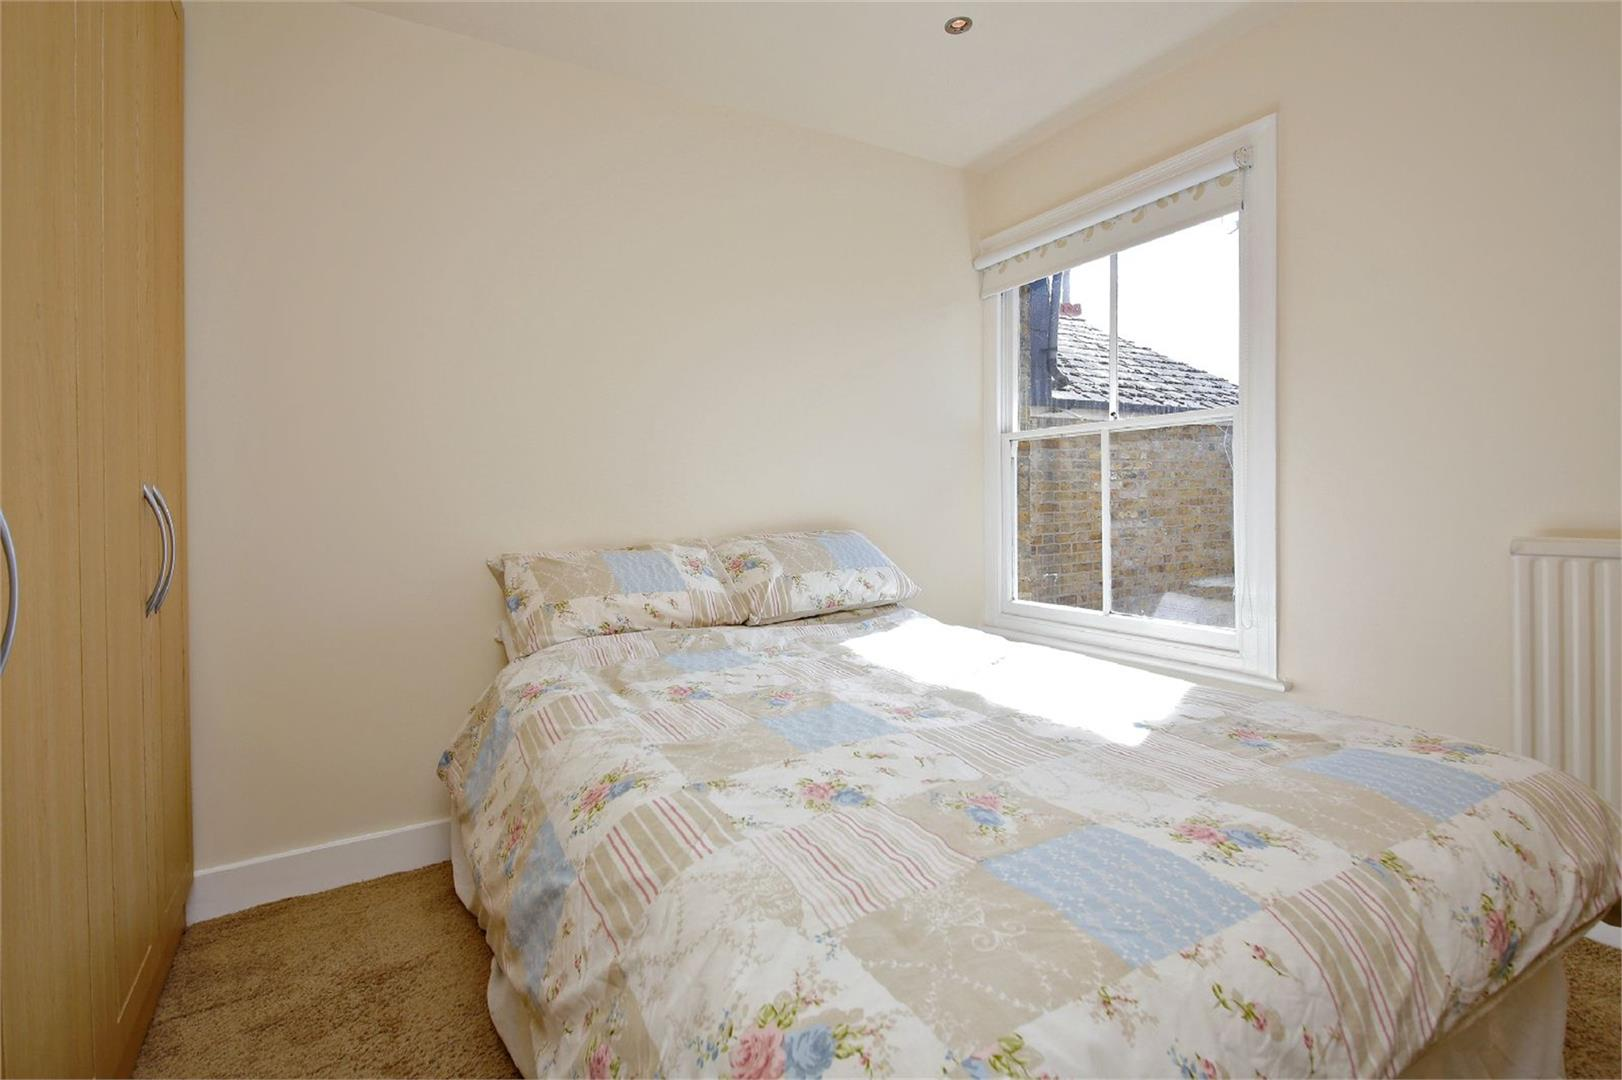 2 bed to rent in Letchmore Heath - (Property Image 6)